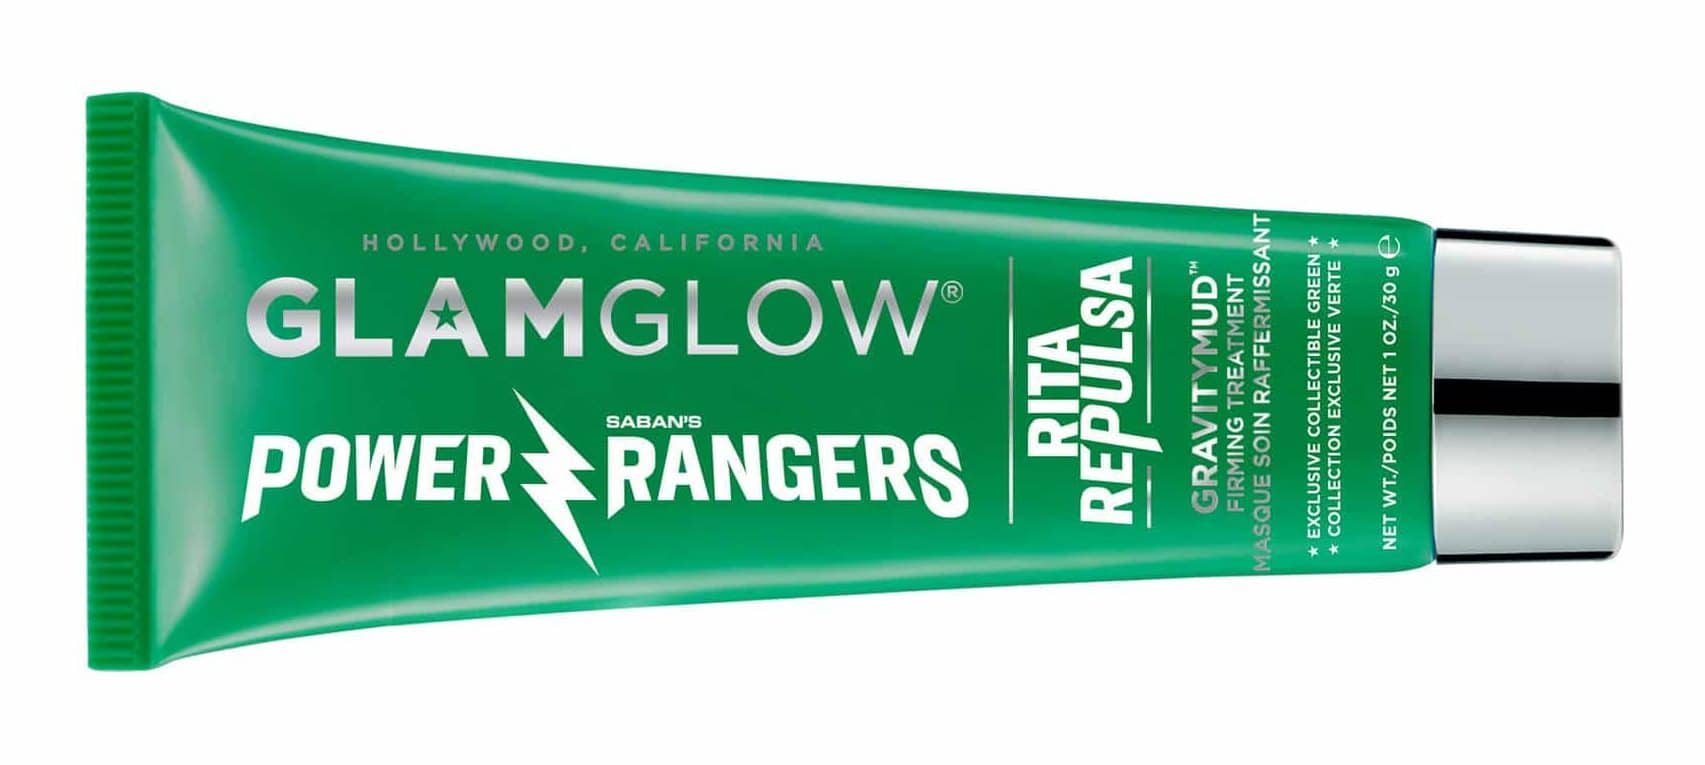 About Beauty GlamGlow Power Rangers2